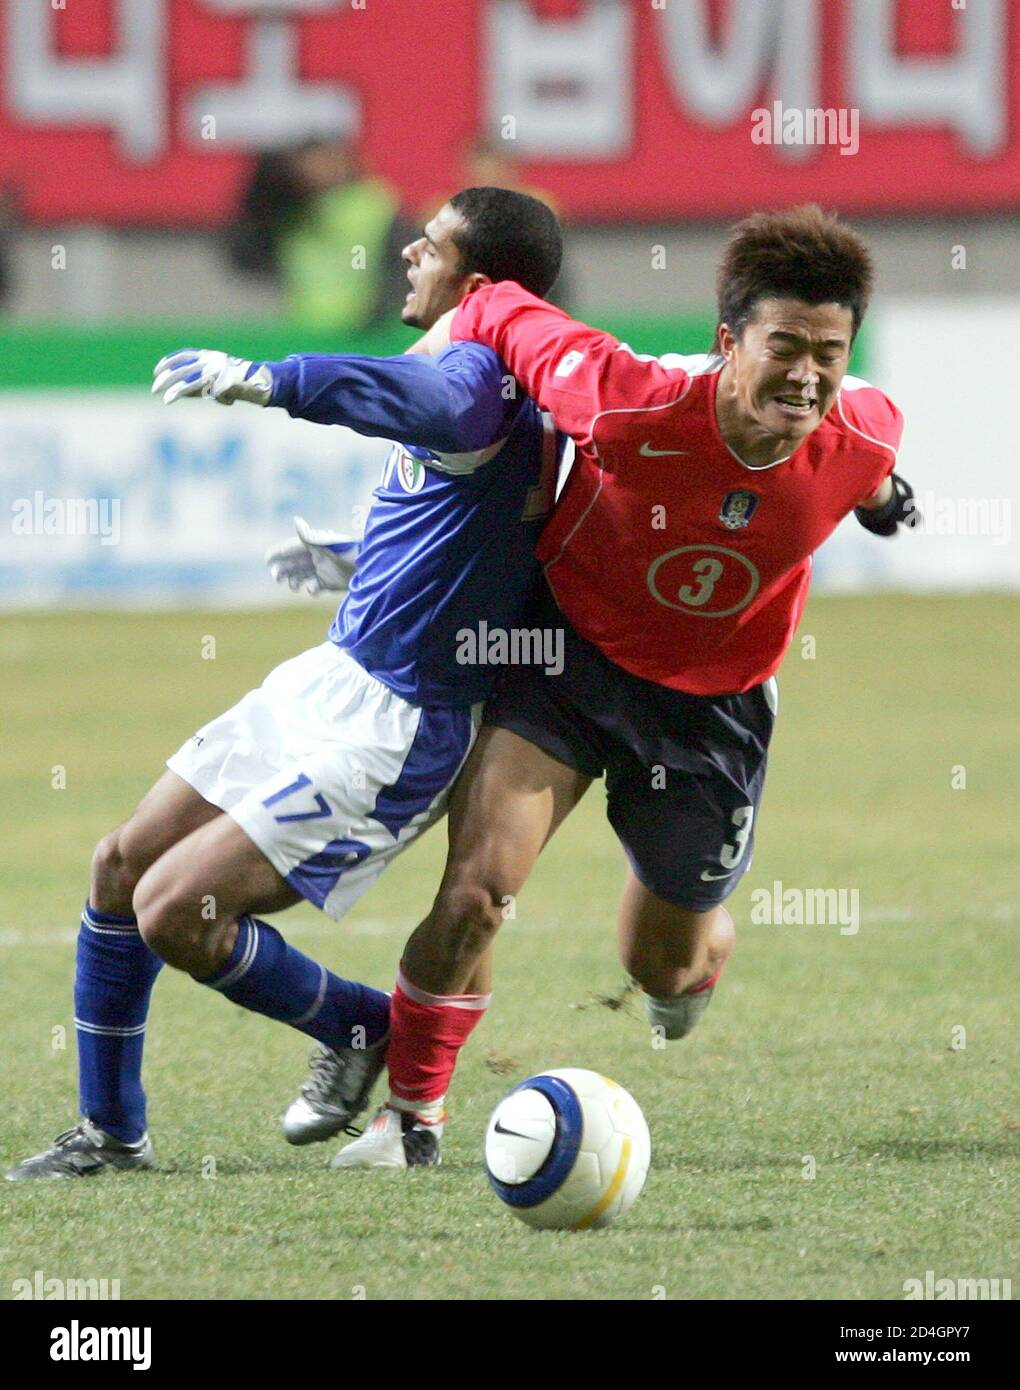 South Korea's Park Jae-hong (R) and Kuwait's Bader Al-Mutwa battle for the ball during the final Asian qualifying round for the 2006 World Cup, in Seoul February 9, 2005. REUTERS/Kim Kyung-Hoon  KKH/LA Stock Photo